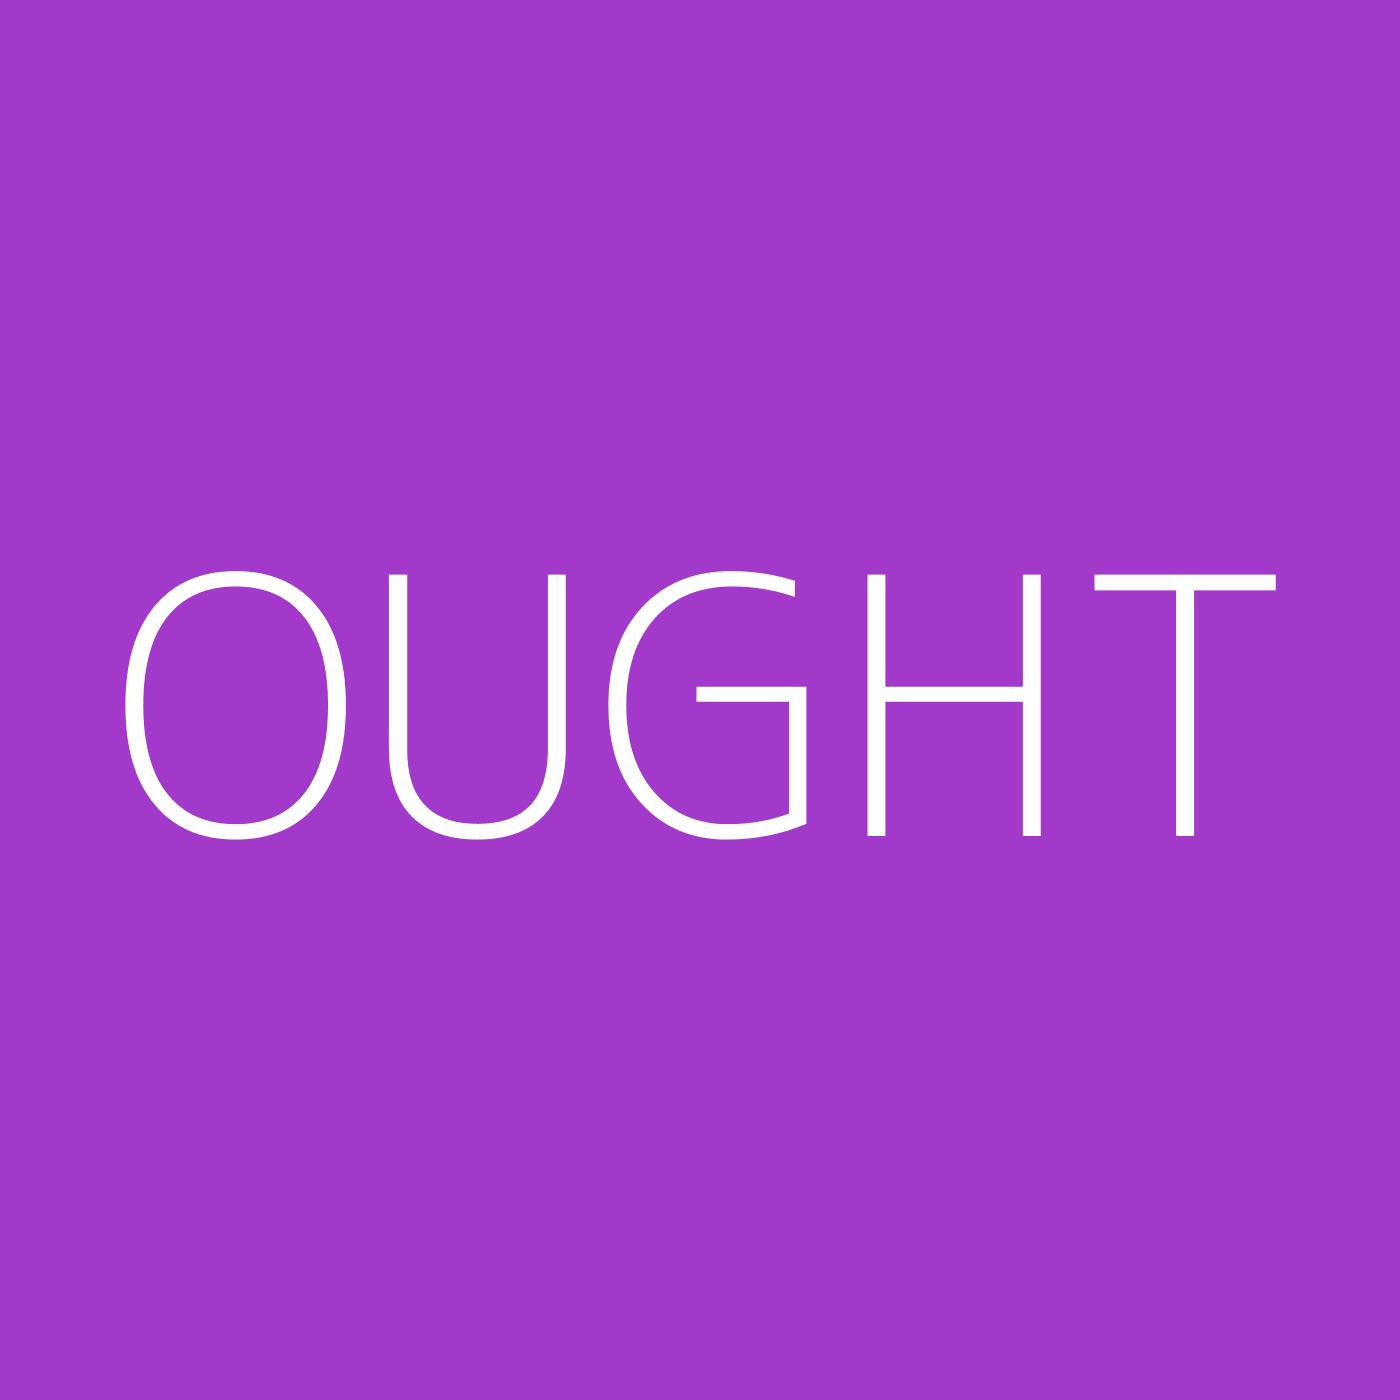 Ought Playlist Artwork